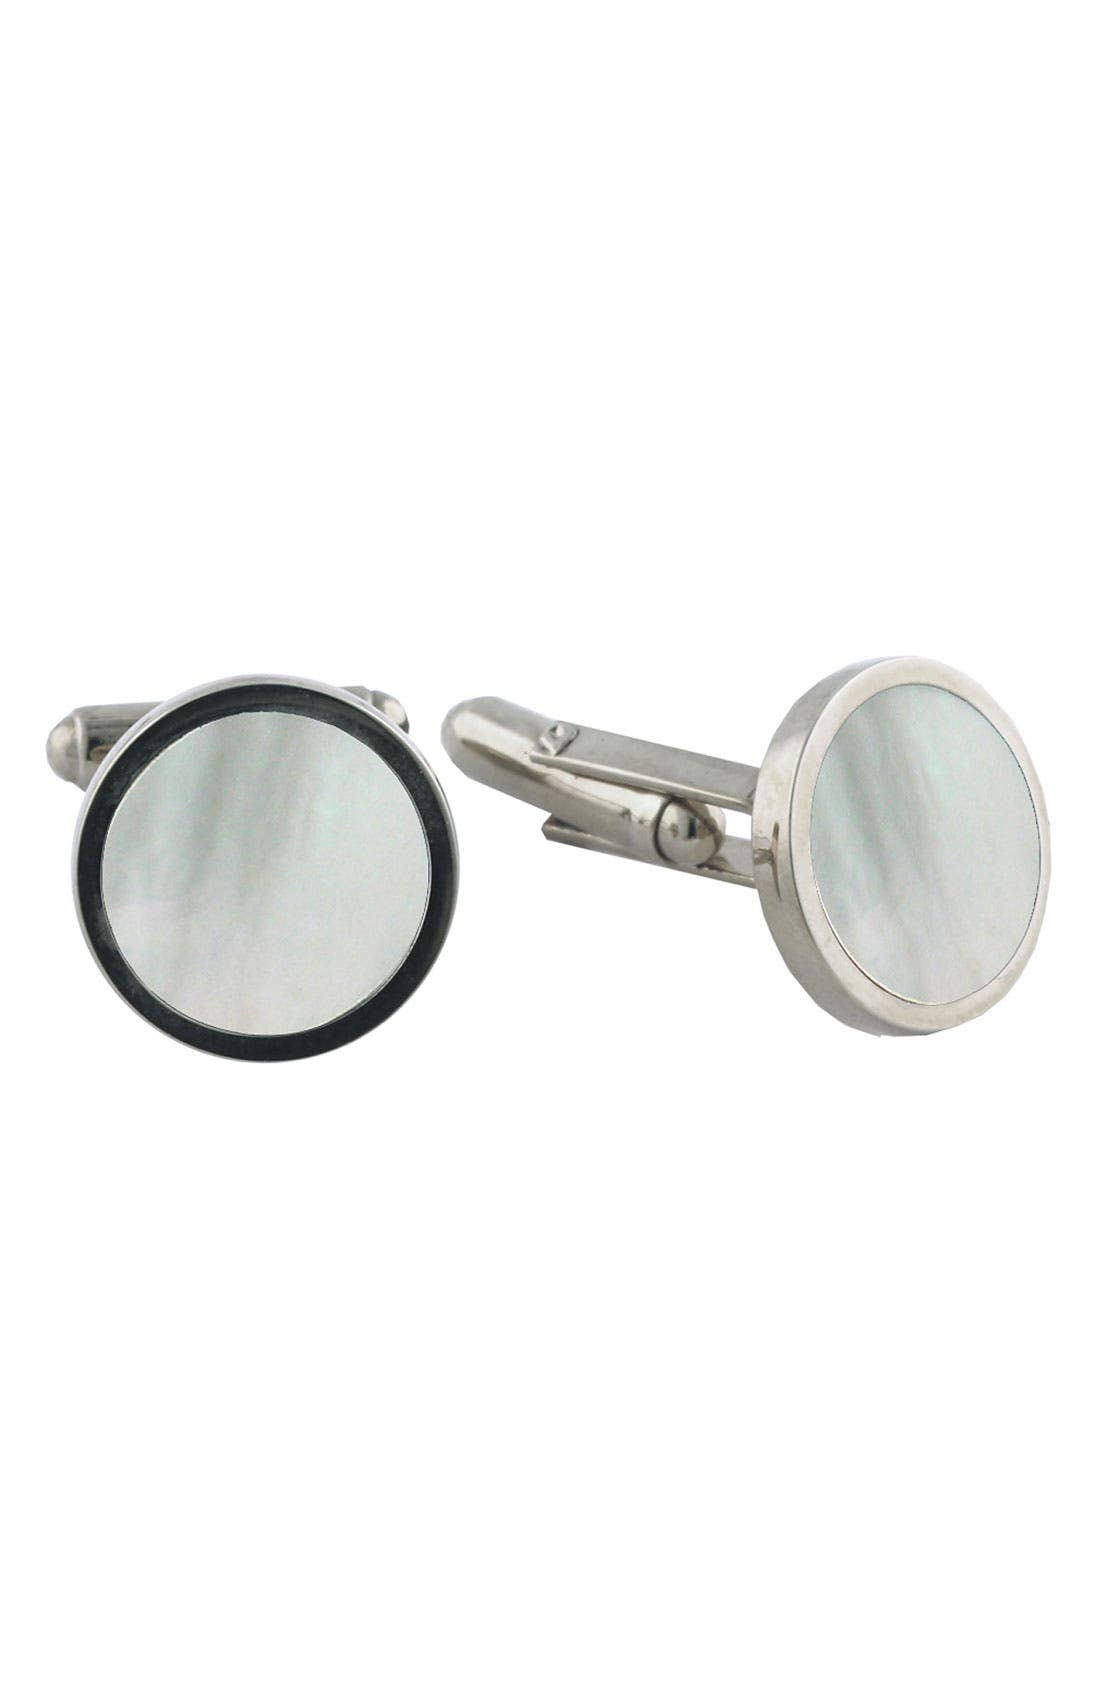 Alternate Image 1 Selected - David Donahue Sterling Silver & Mother-of-Pearl Cuff Links